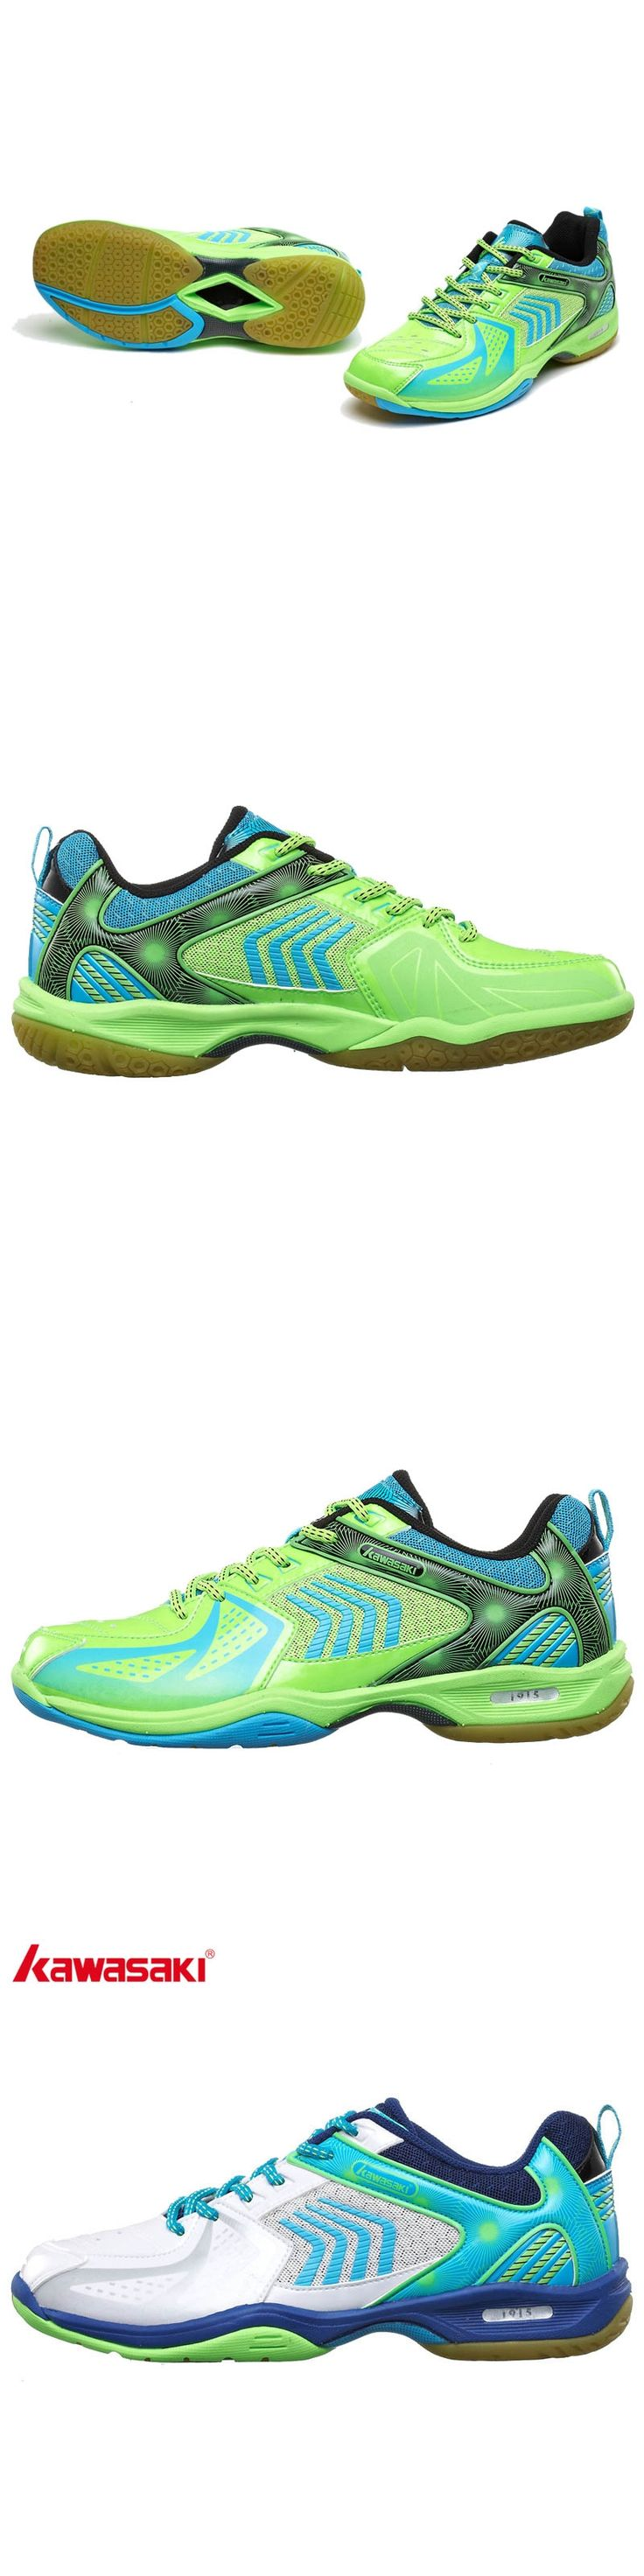 KAWASAKI Men's Badminton Court Shoes Breathable Anti-torsion Wear-resistance Rubber Indoor Sports Sneakers K-138 139